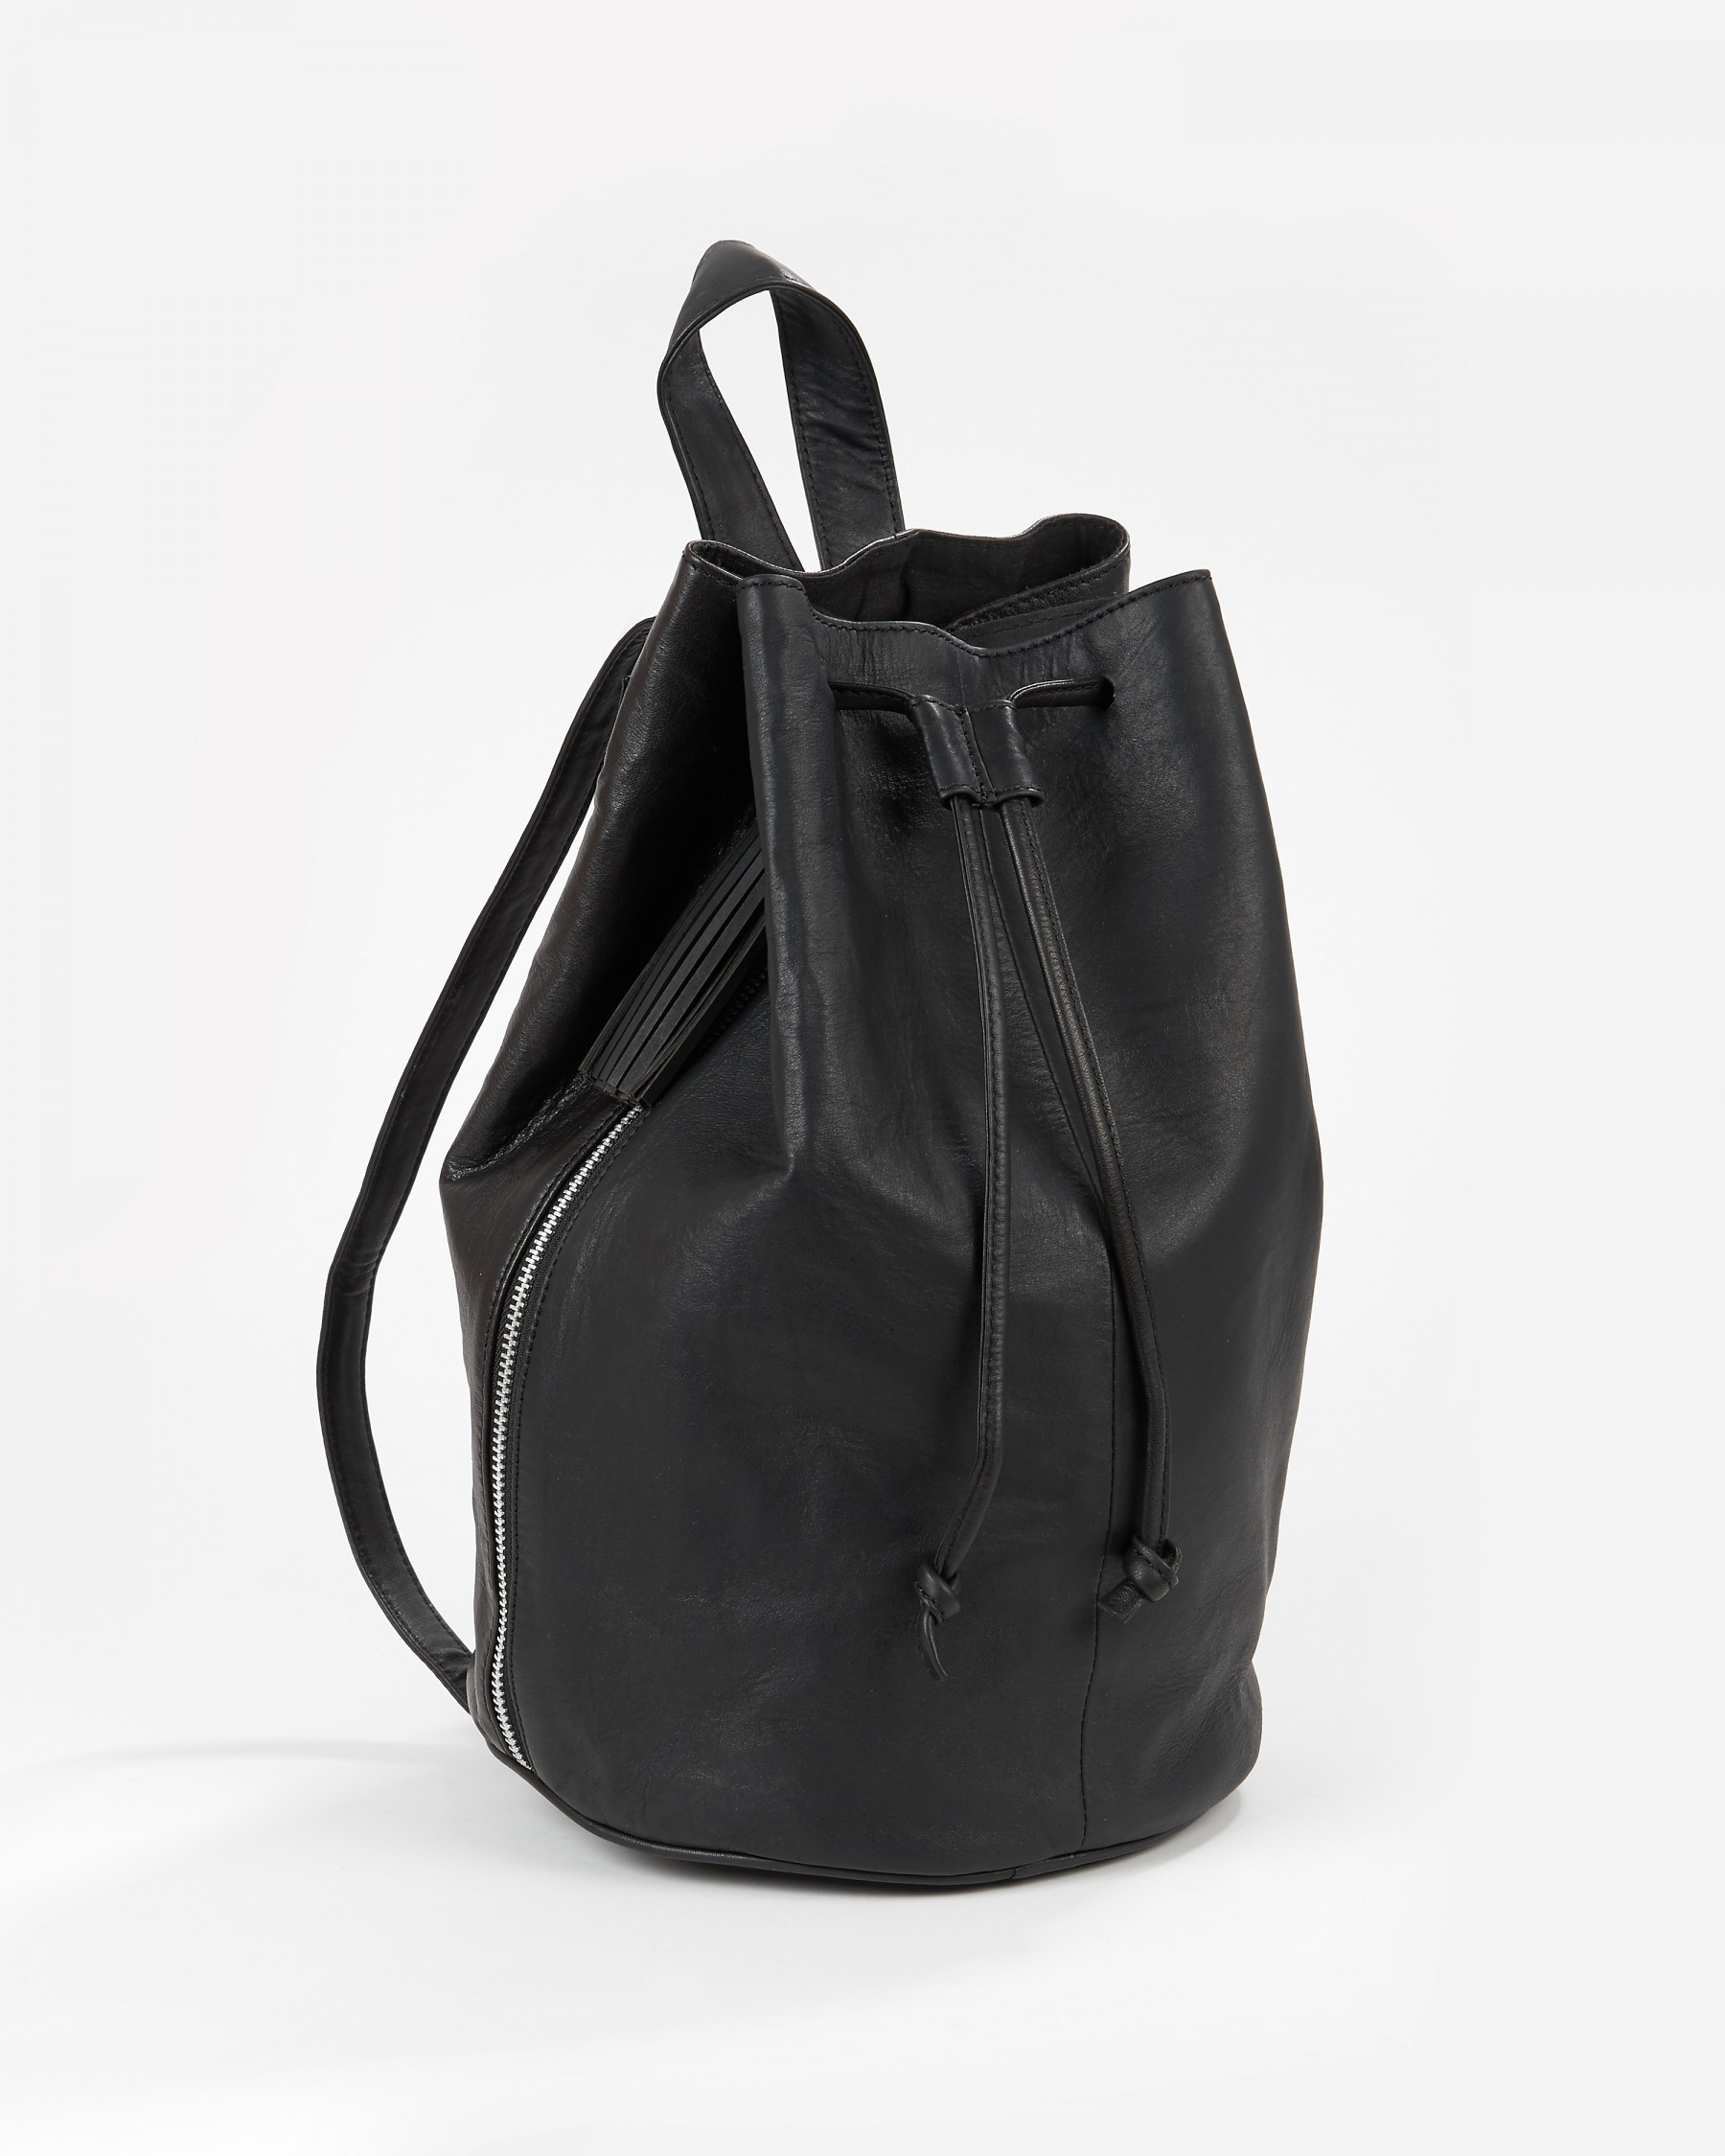 Leather backpack, £110, Selected Femme